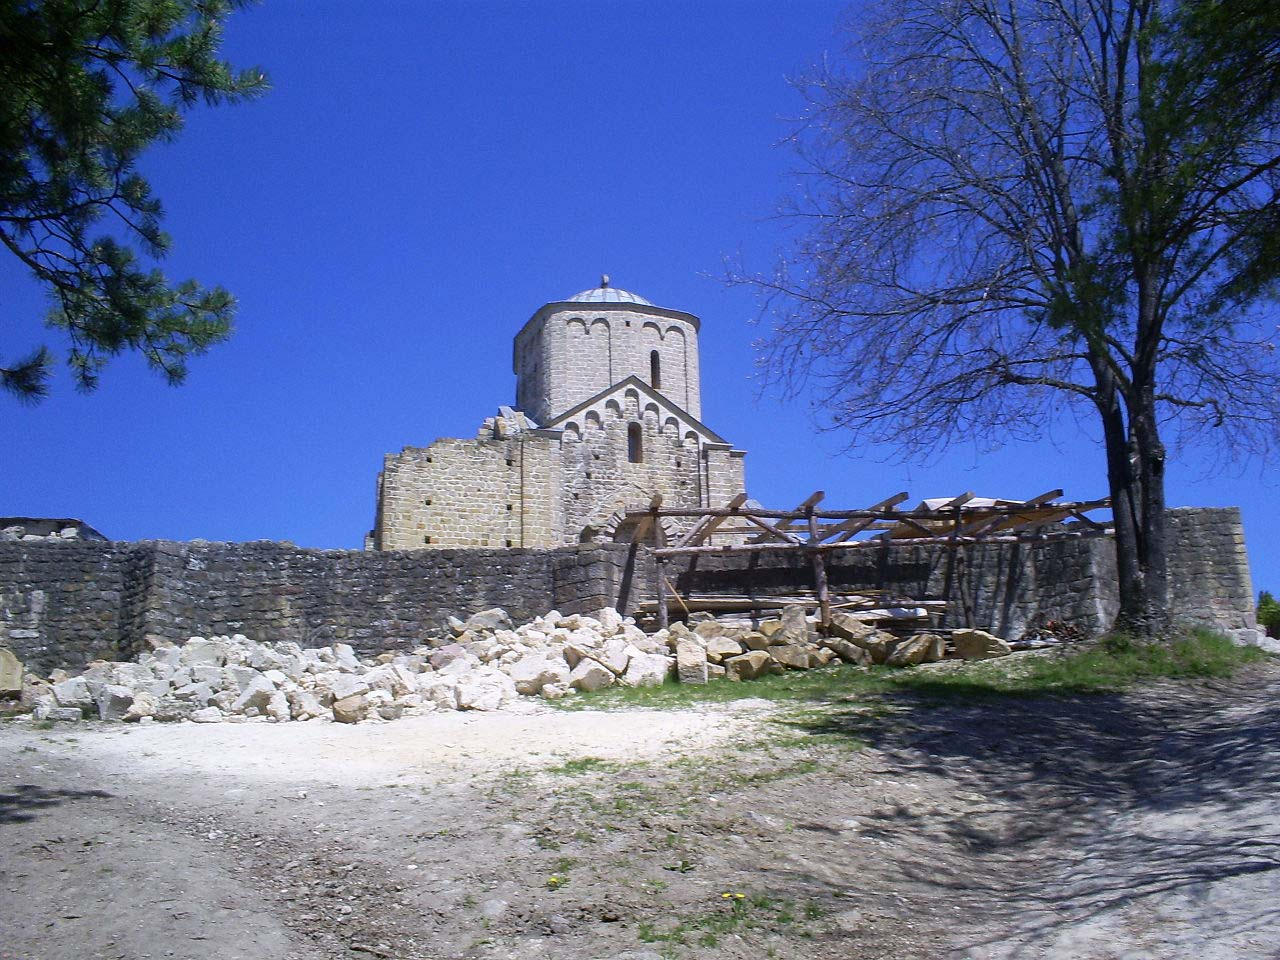 Serbian medieval architecture